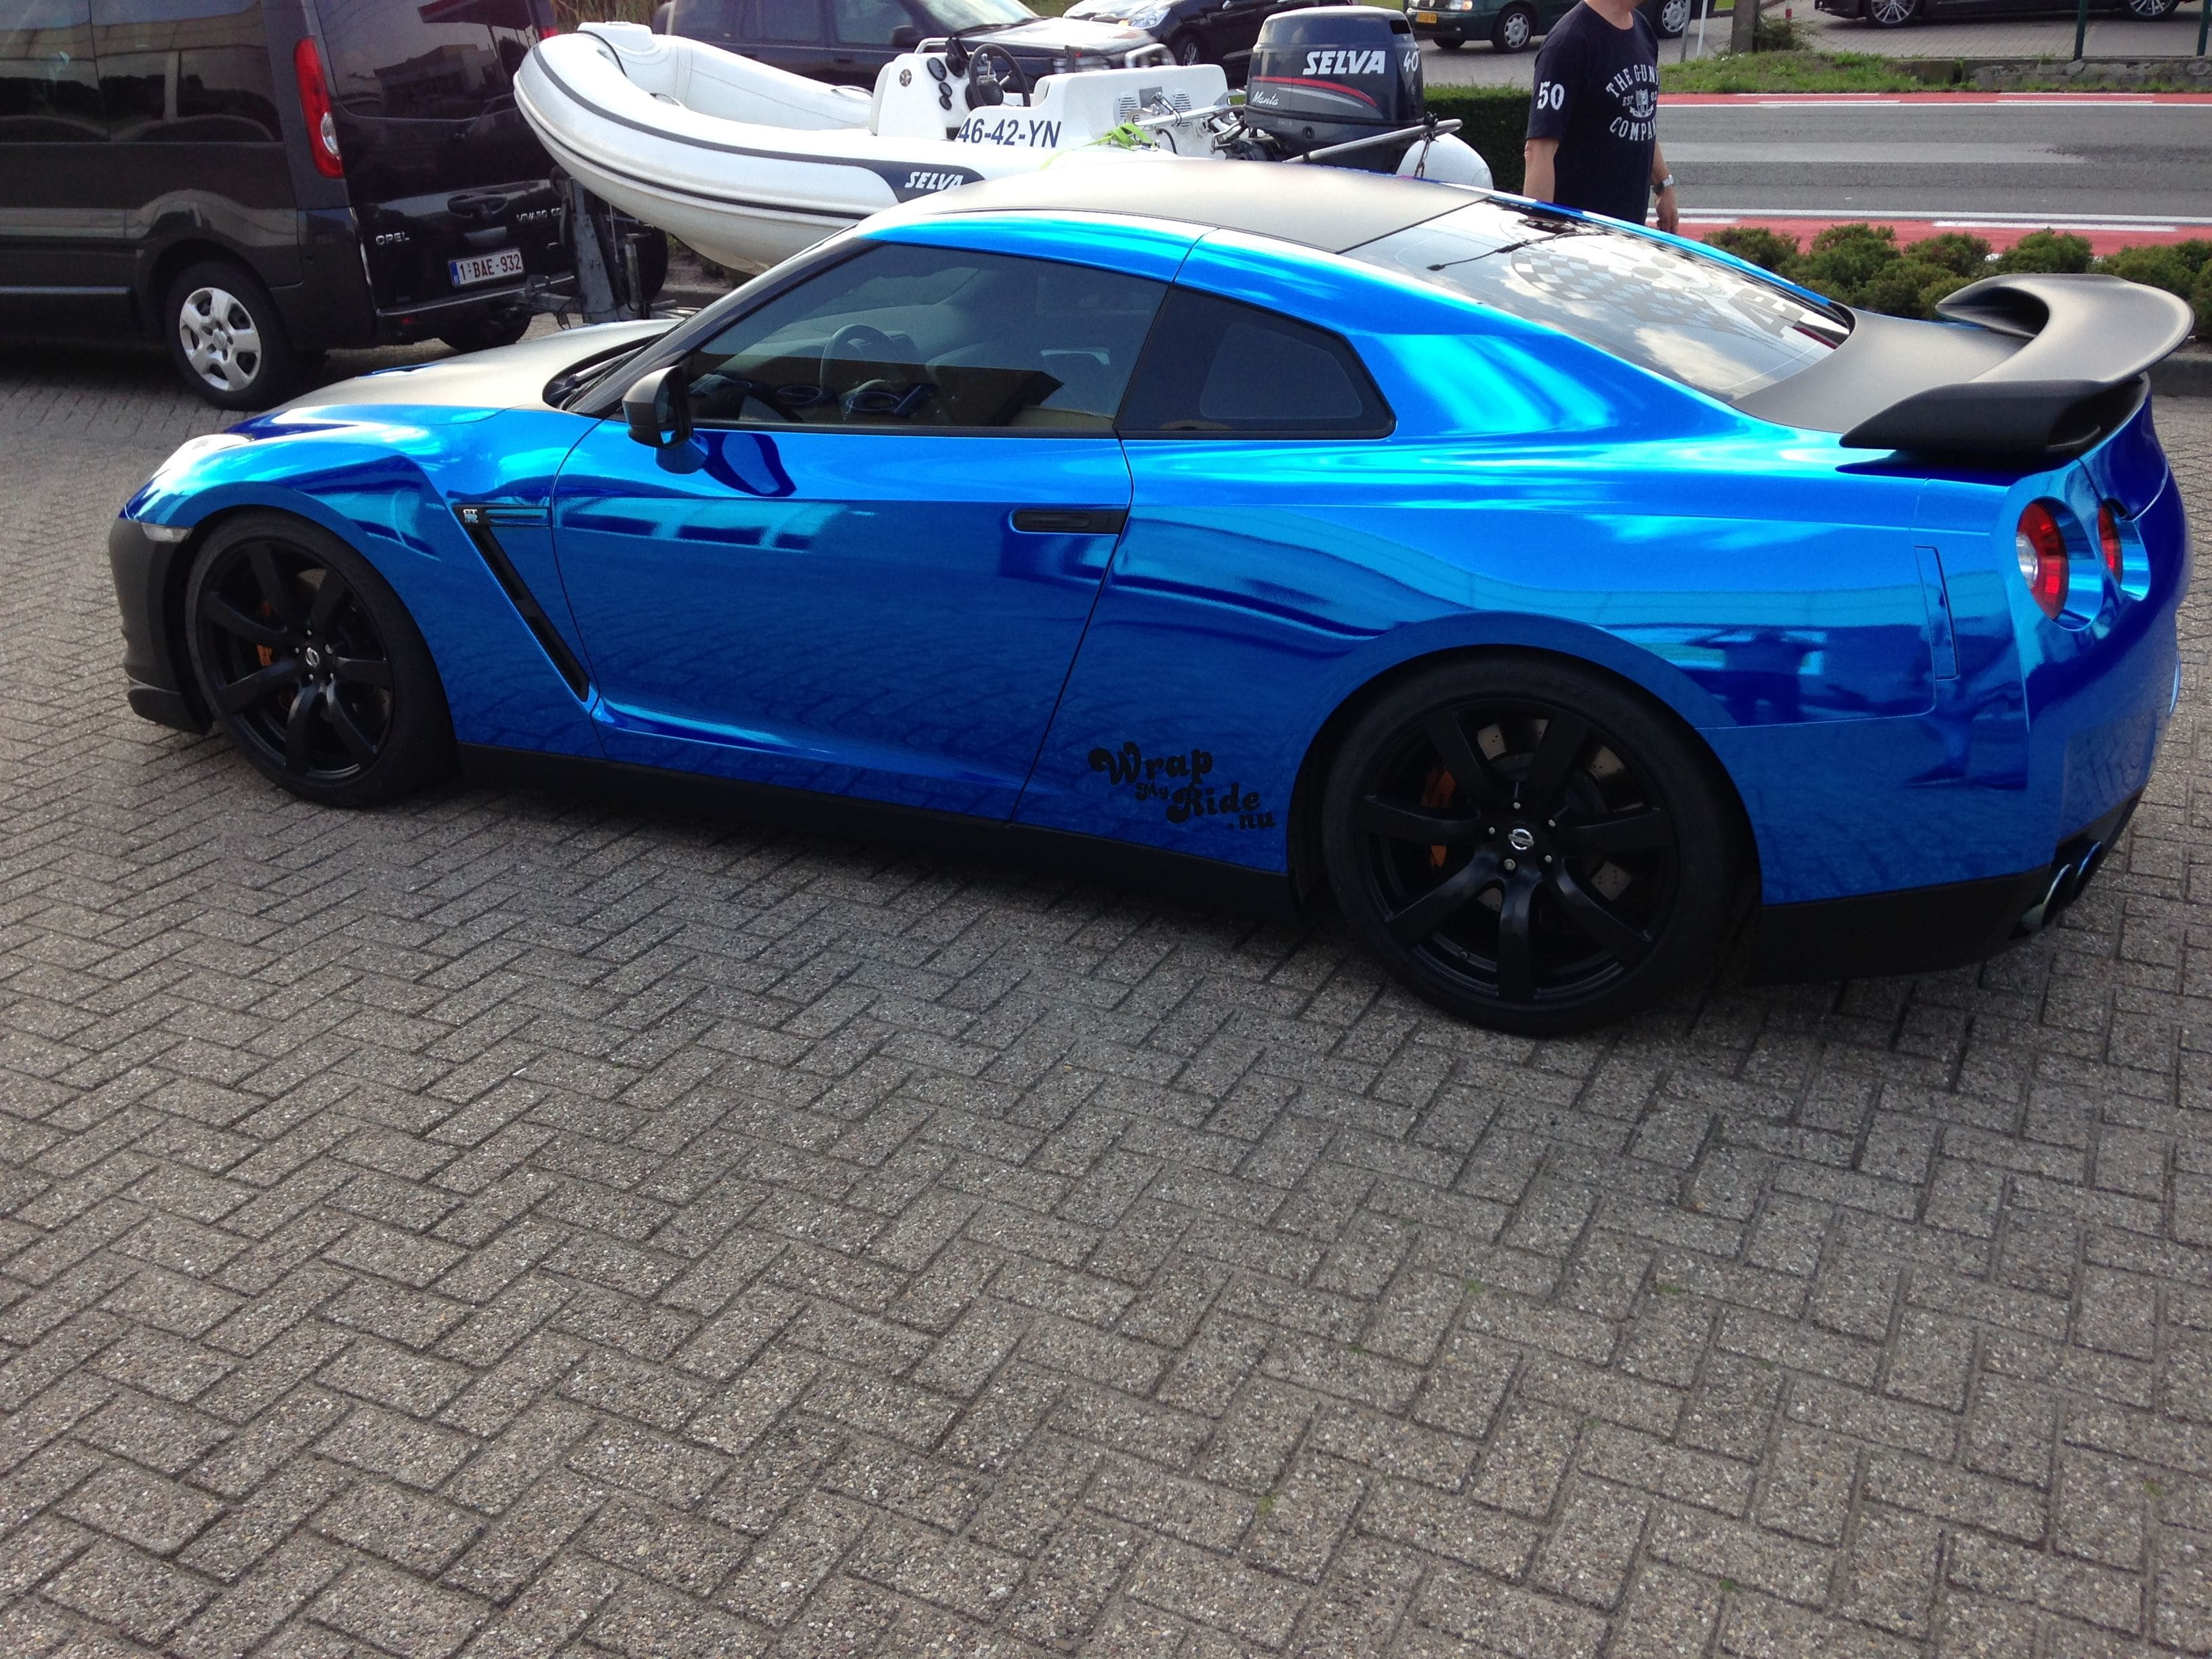 Nissan GT-R met Blue Chrome Wrap, Carwrapping door Wrapmyride.nu Foto-nr:6465, ©2020